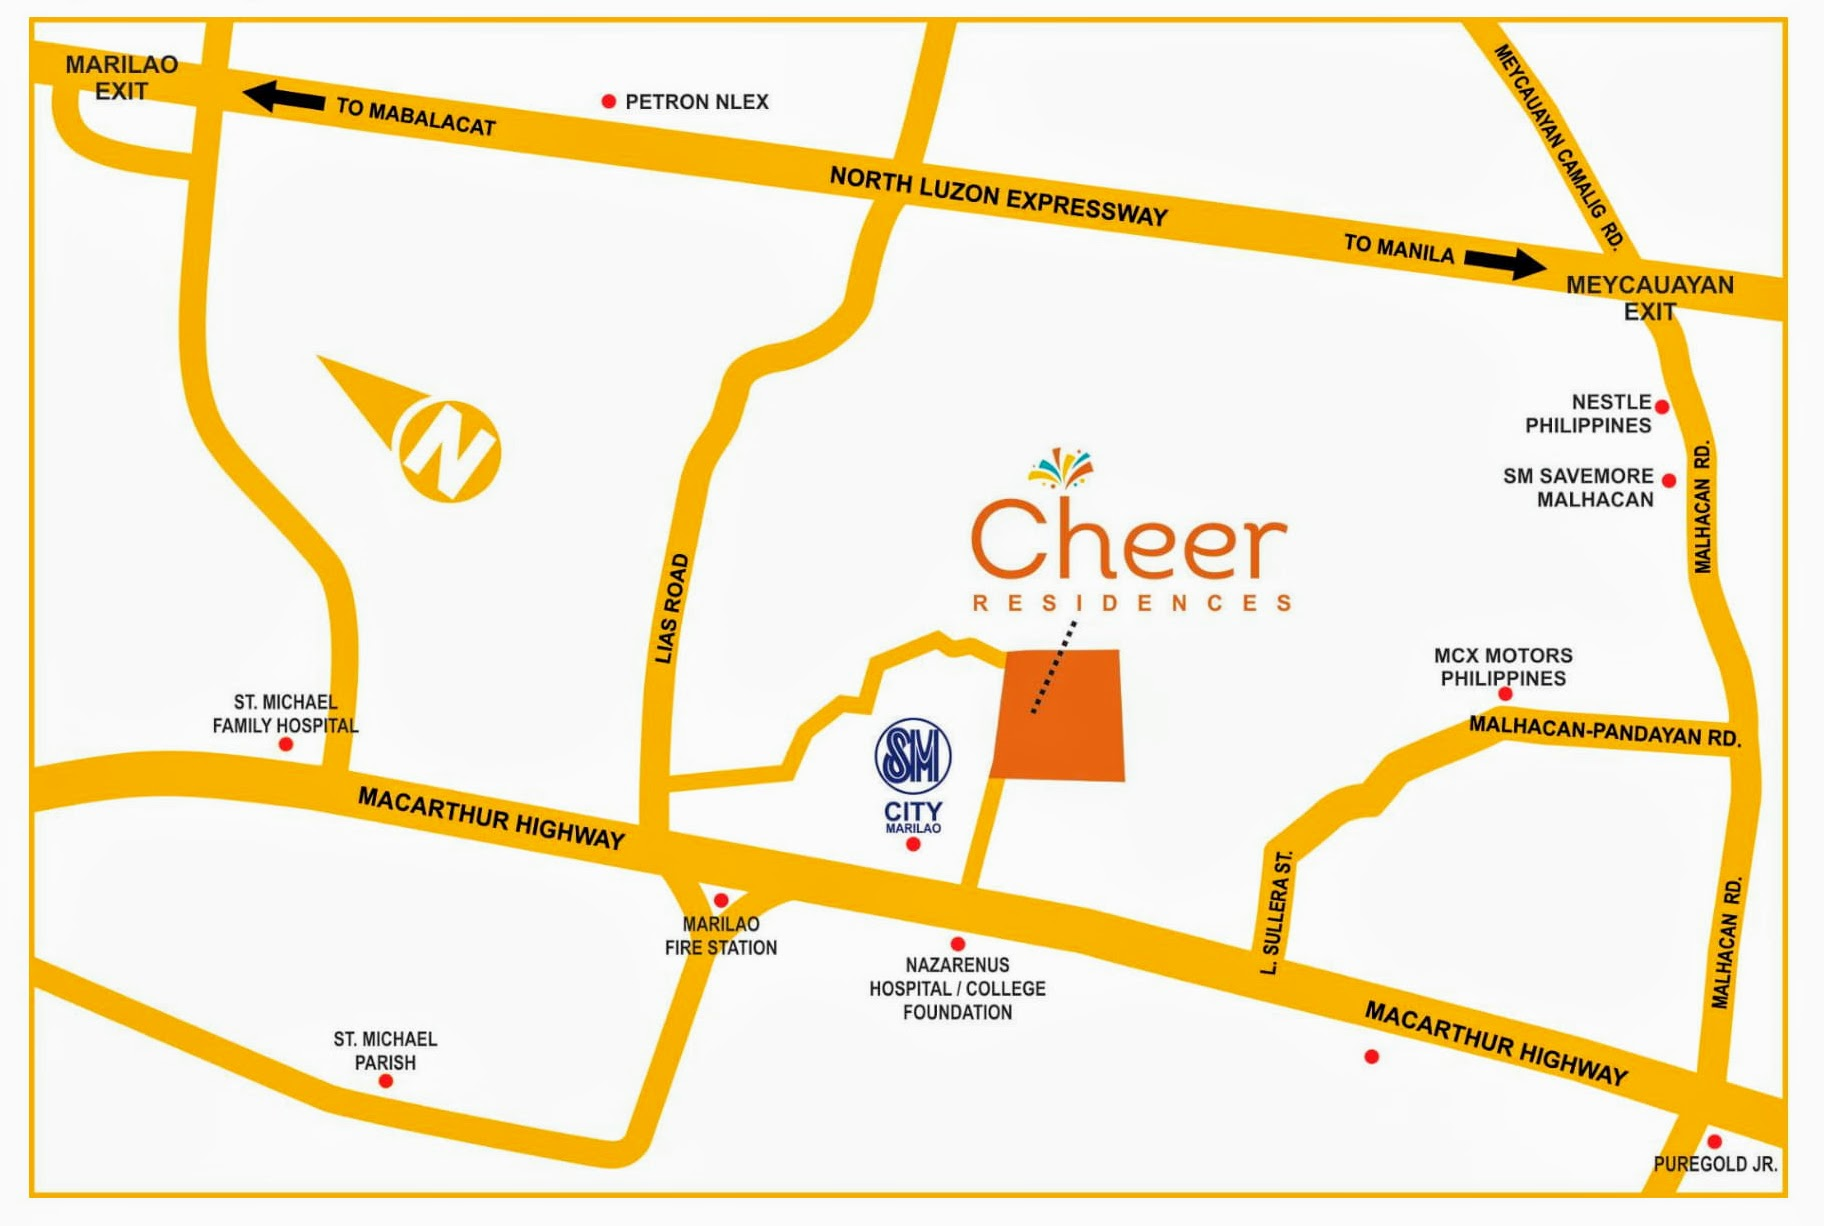 Cheer Residences Marilao, Bulacan location map